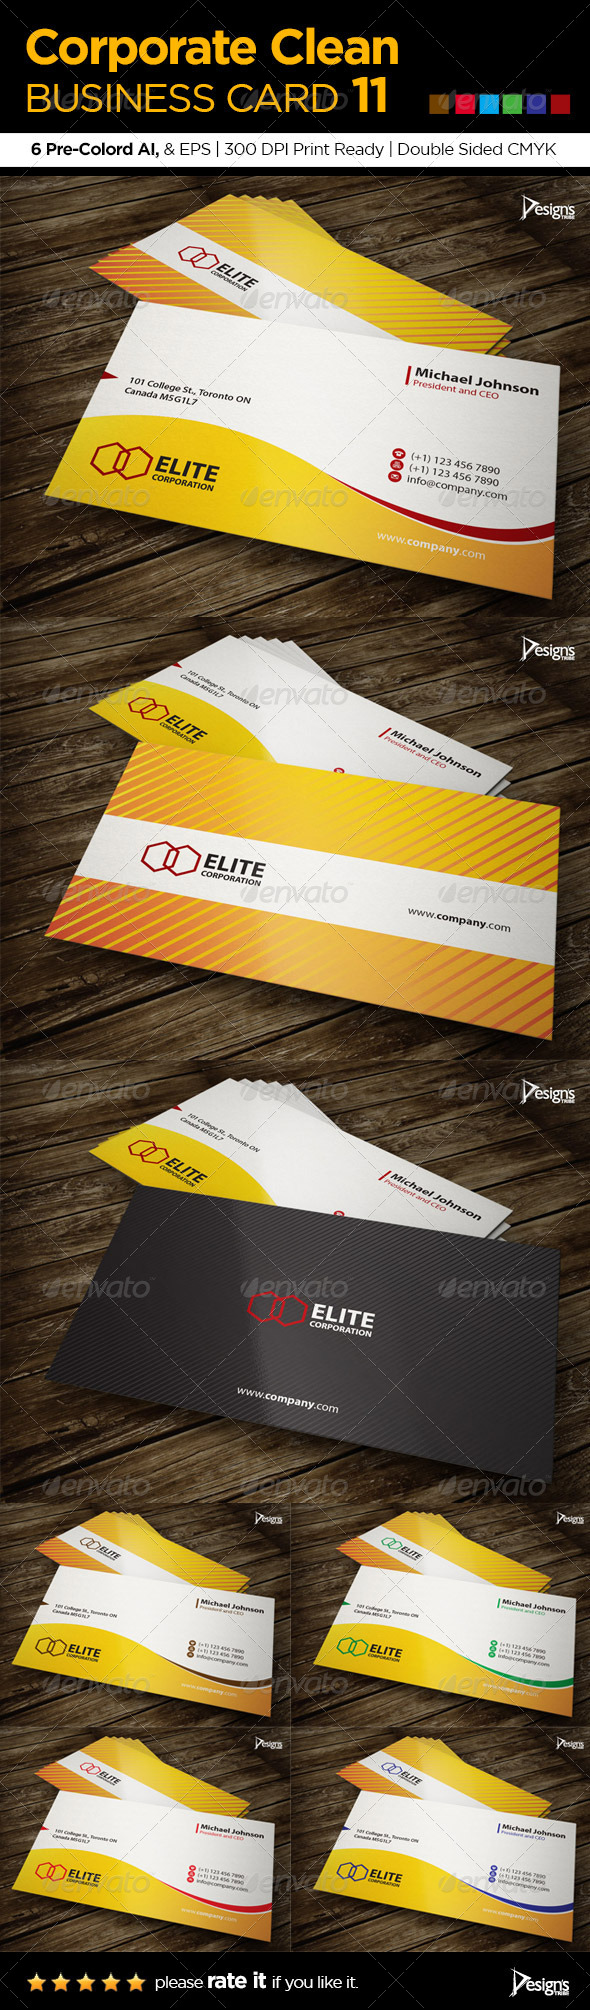 GraphicRiver Corporate Clean Business Card 11 6075687